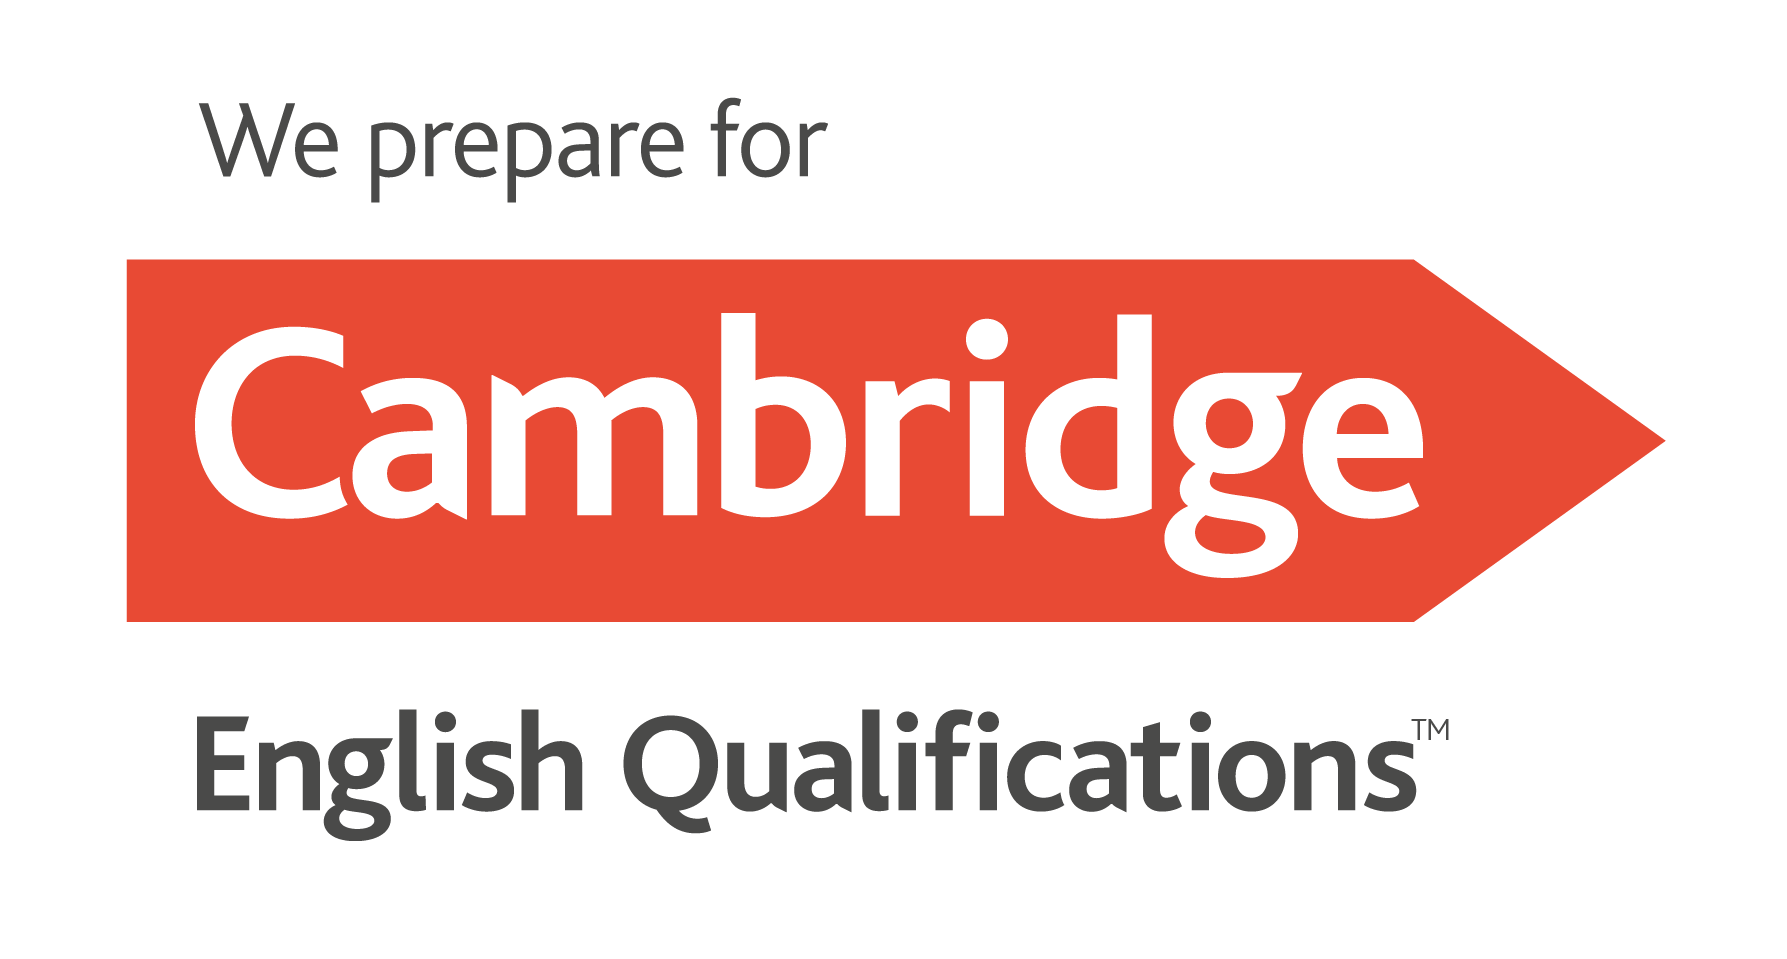 We prepare for <strong>Cambridge</strong> English Qualifications